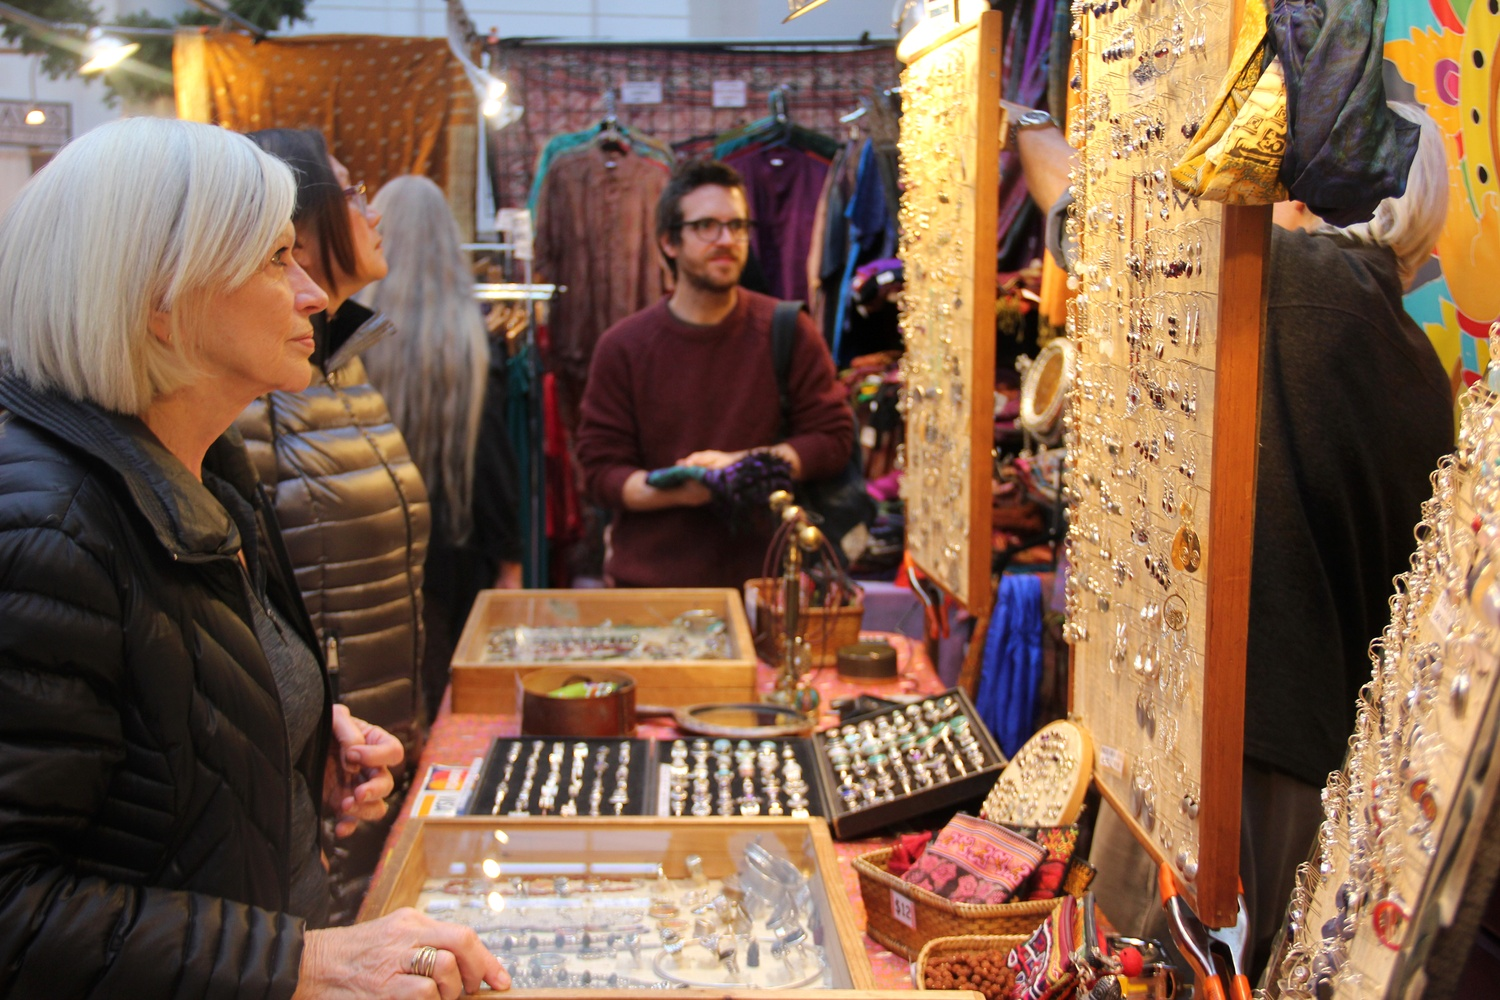 Shoppers at the 30th annual Harvard Square Holiday Fair browse the many vendors around square this weekend. Local and global vendors sold a wide range of crafts, including jewelry and artwork.